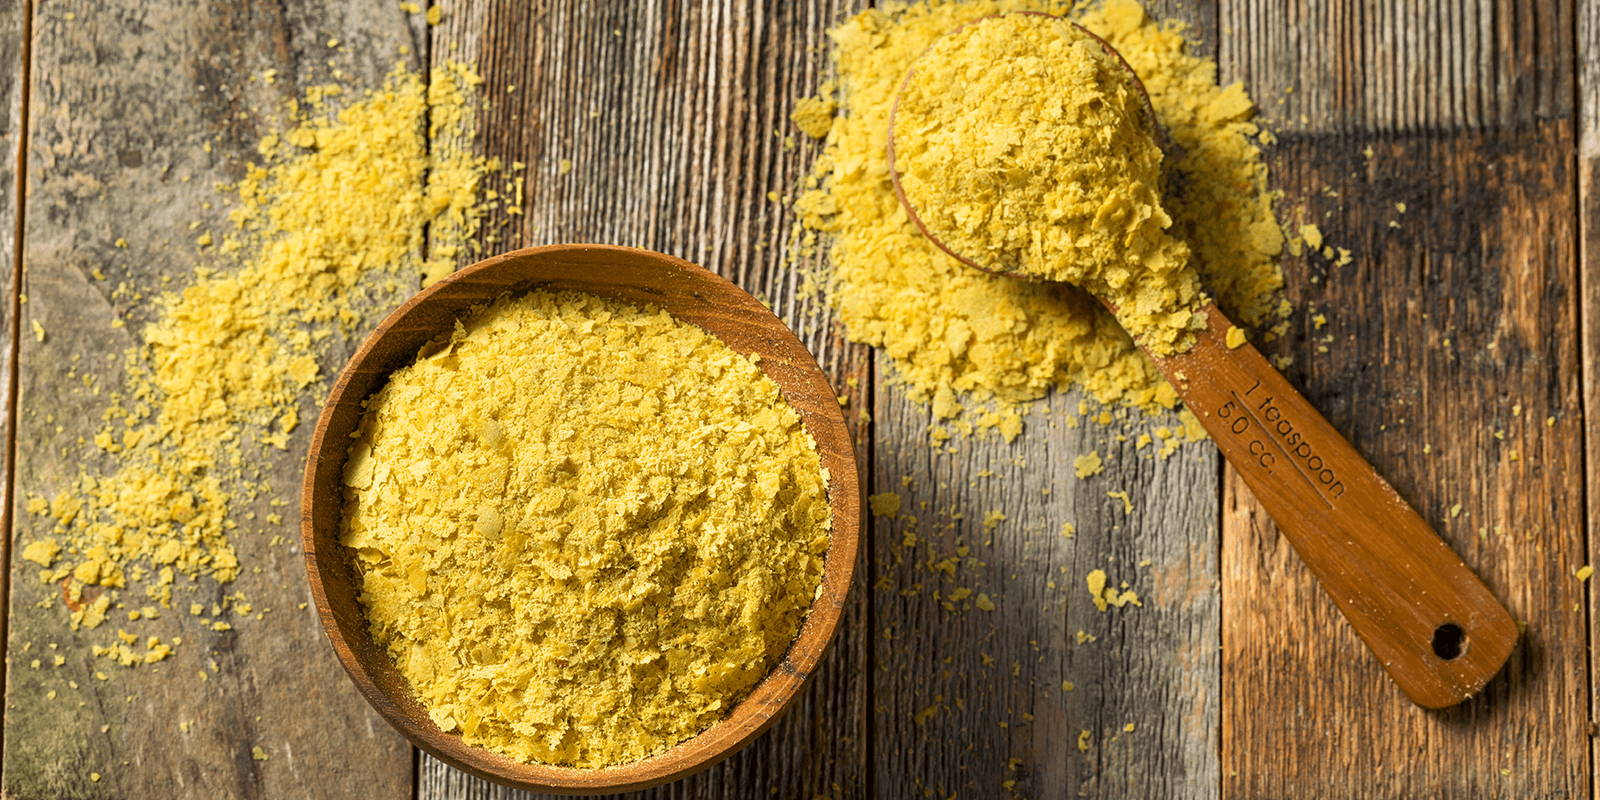 A bowl and spoon of nutritional yeast